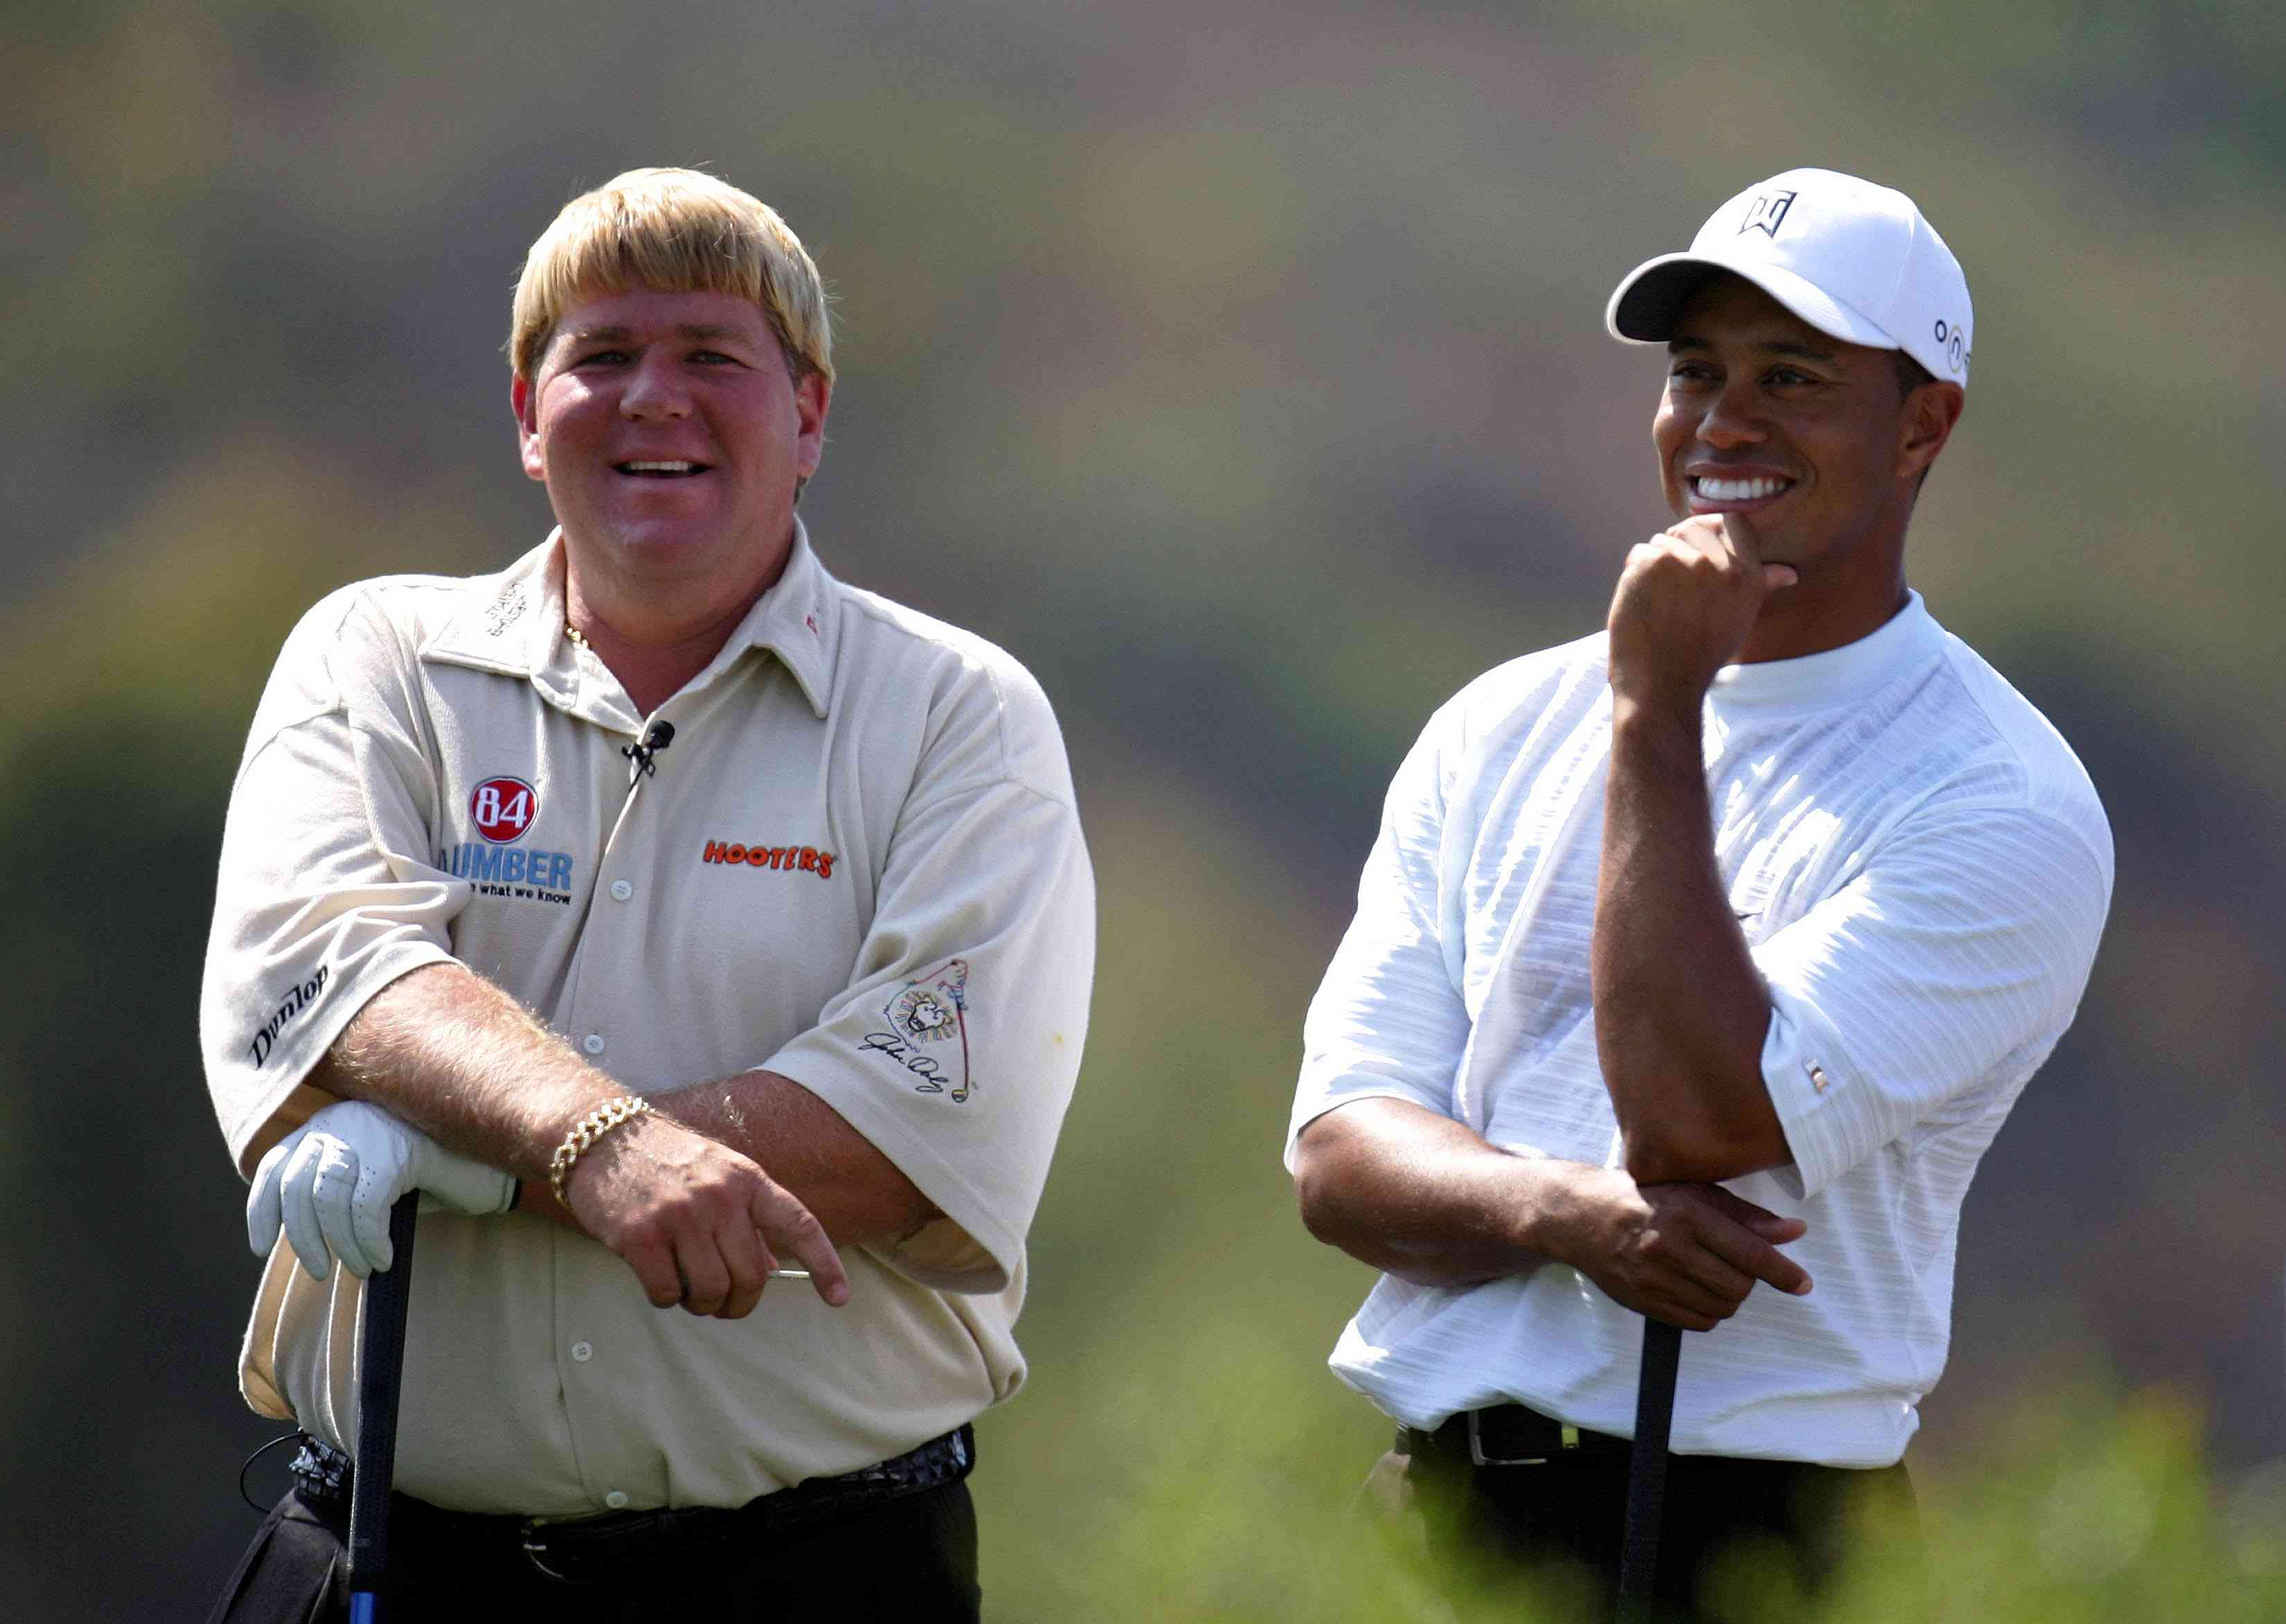 John Daly and teammate Tiger Woods joke on the 1st tee during the Battle at the Bridges on July 25, 2005 at The Bridges at Rancho Sante Fe in Rancho Sante Fe, California.